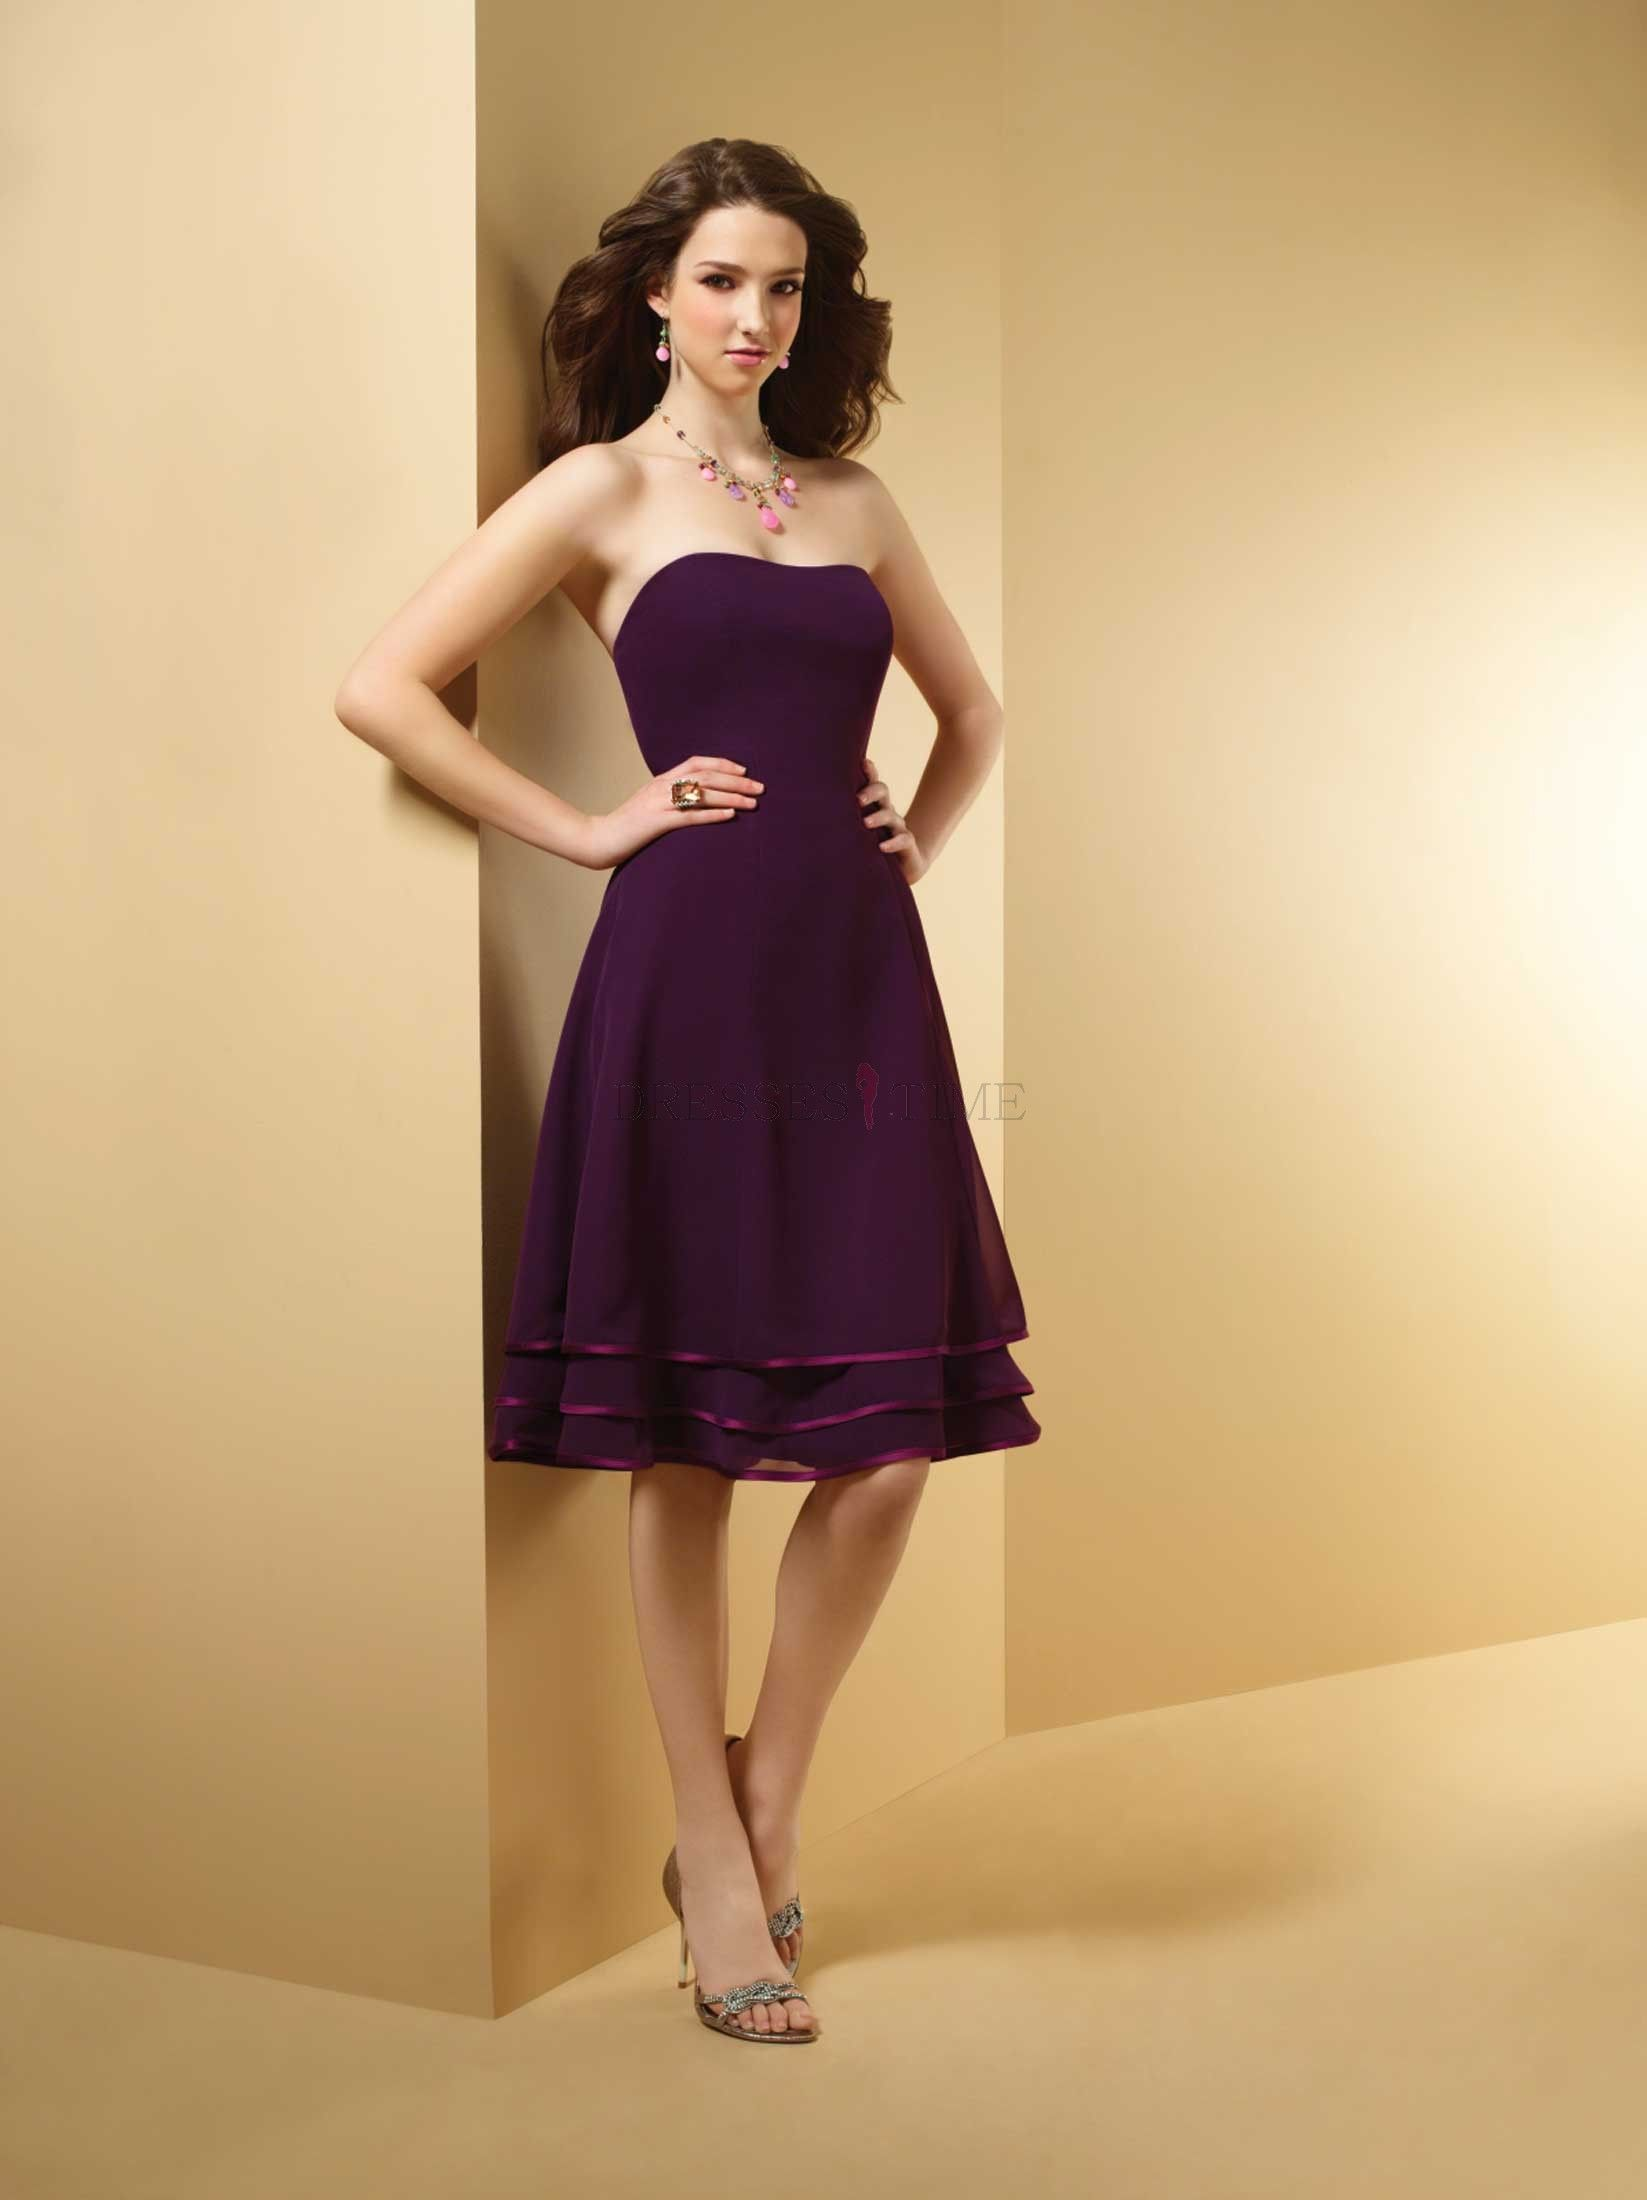 Cheap wedding dresses under 50  purple bridesmaid dresses under   Top  Dark purple bridesmaid